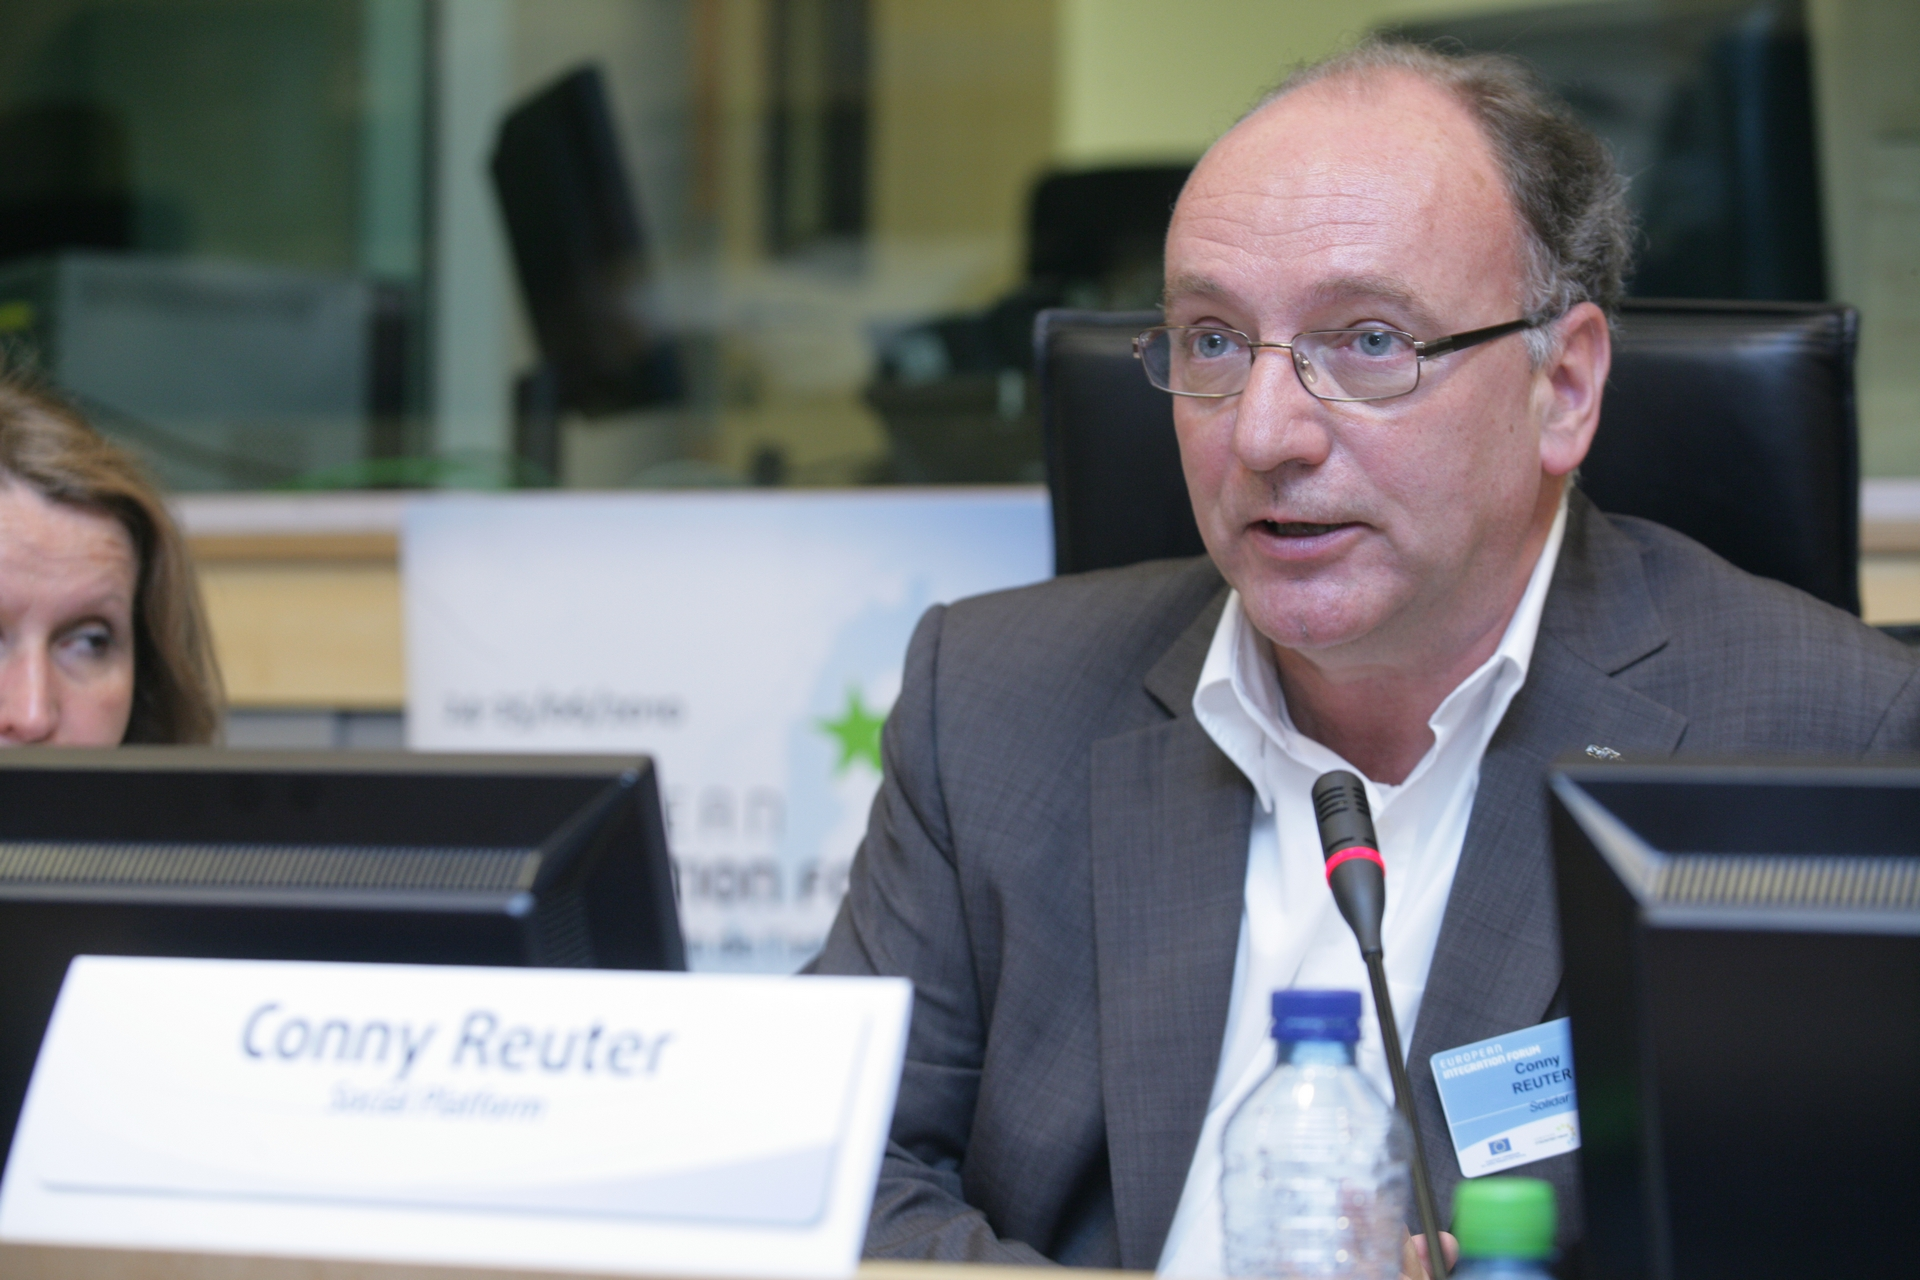 17. Conny Reuter, President of the Social Platform, chairing the conclusions session